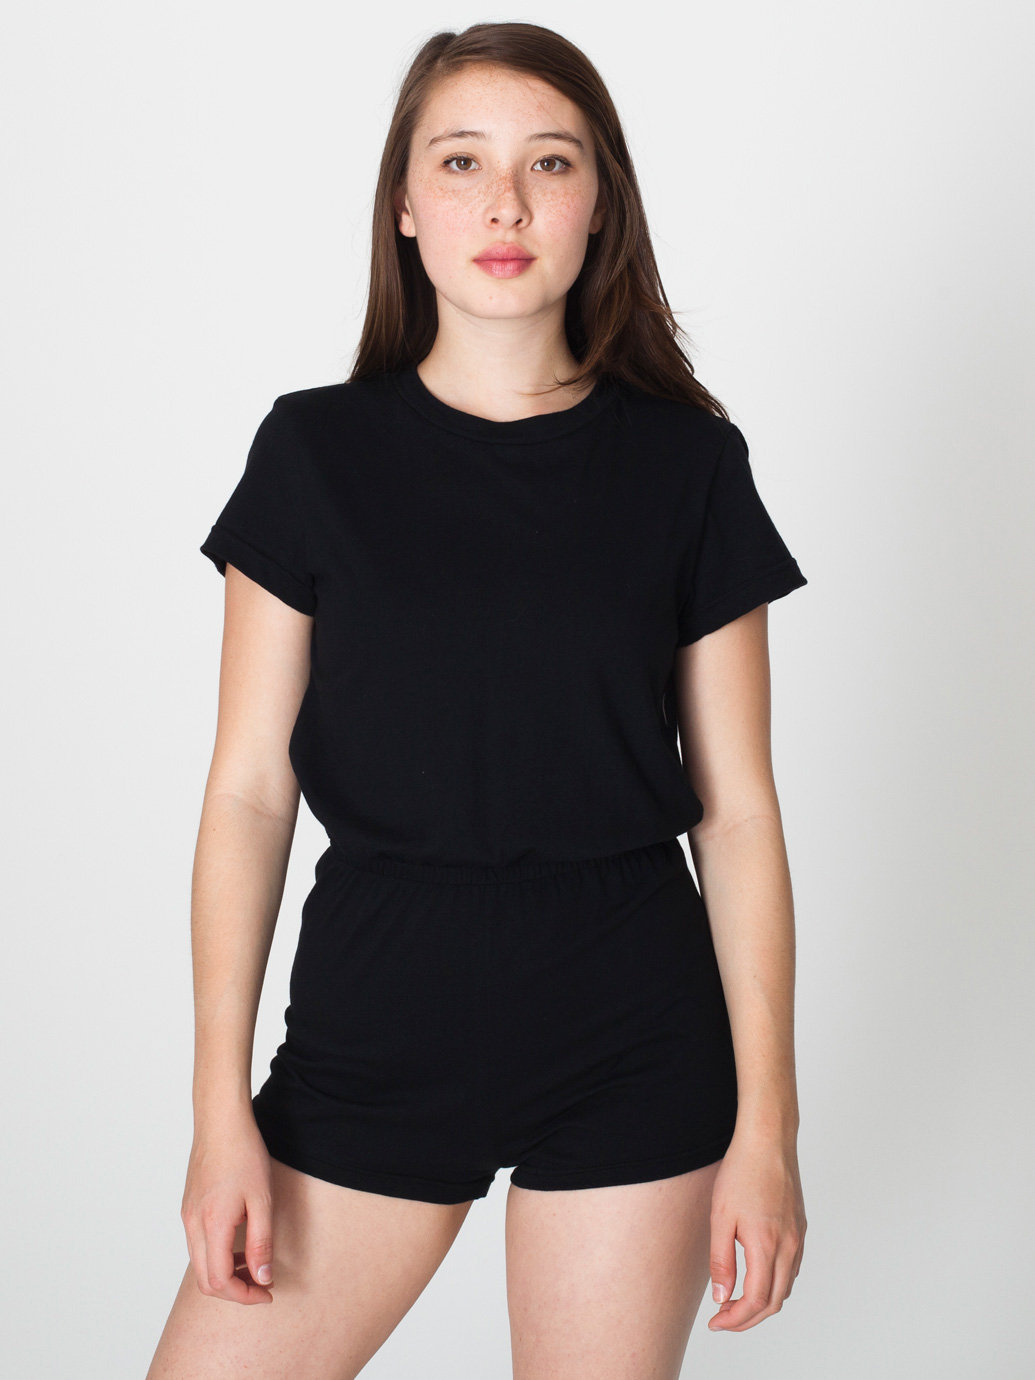 Jersey t shirt romper american apparel for American apparel t shirt design